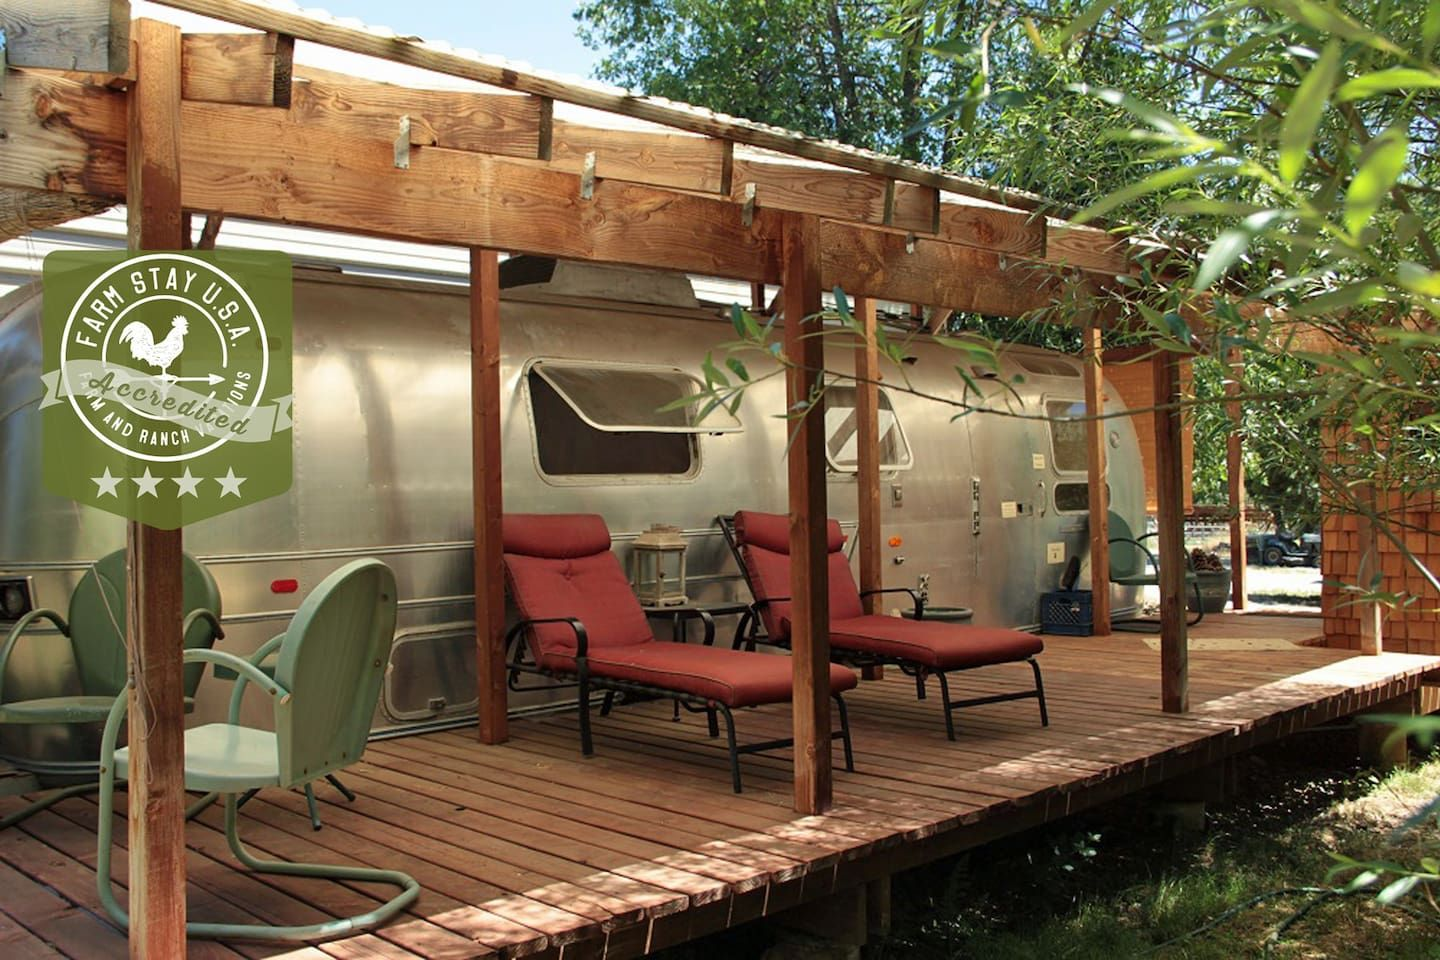 Off-the-Grid Retro Airstream at Pholia Goat Farm - Campers